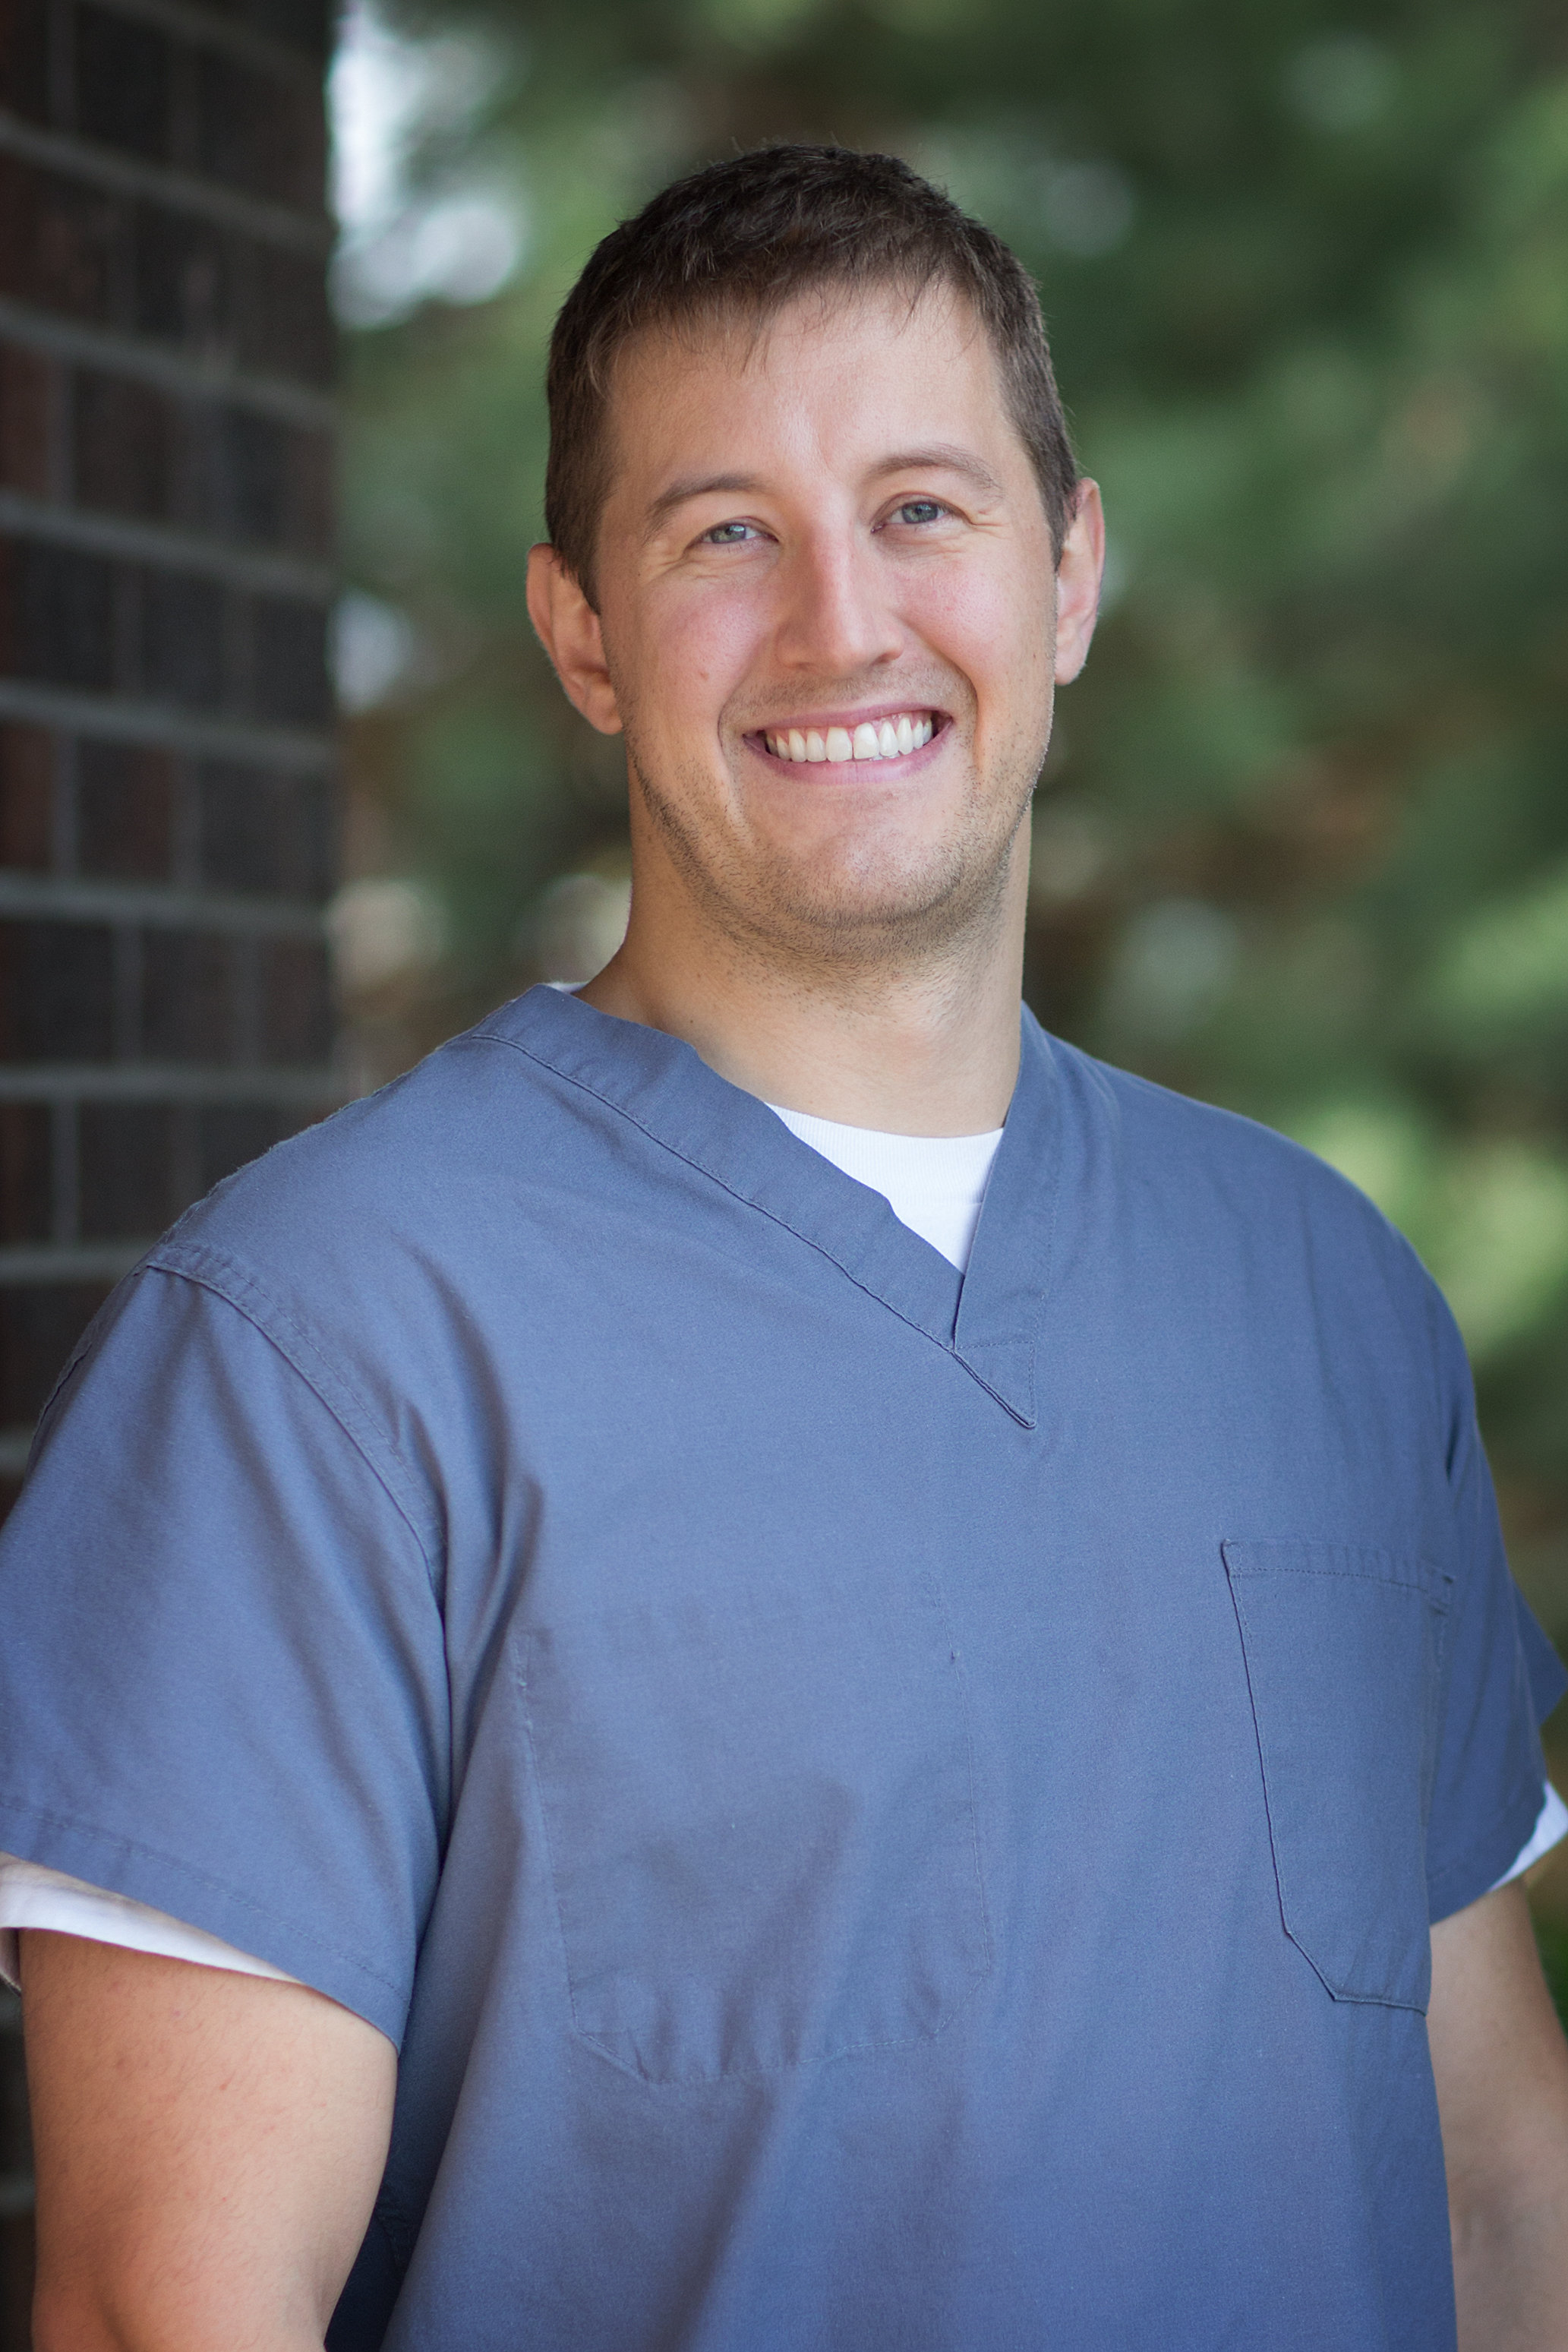 Dr. Justin Courtney